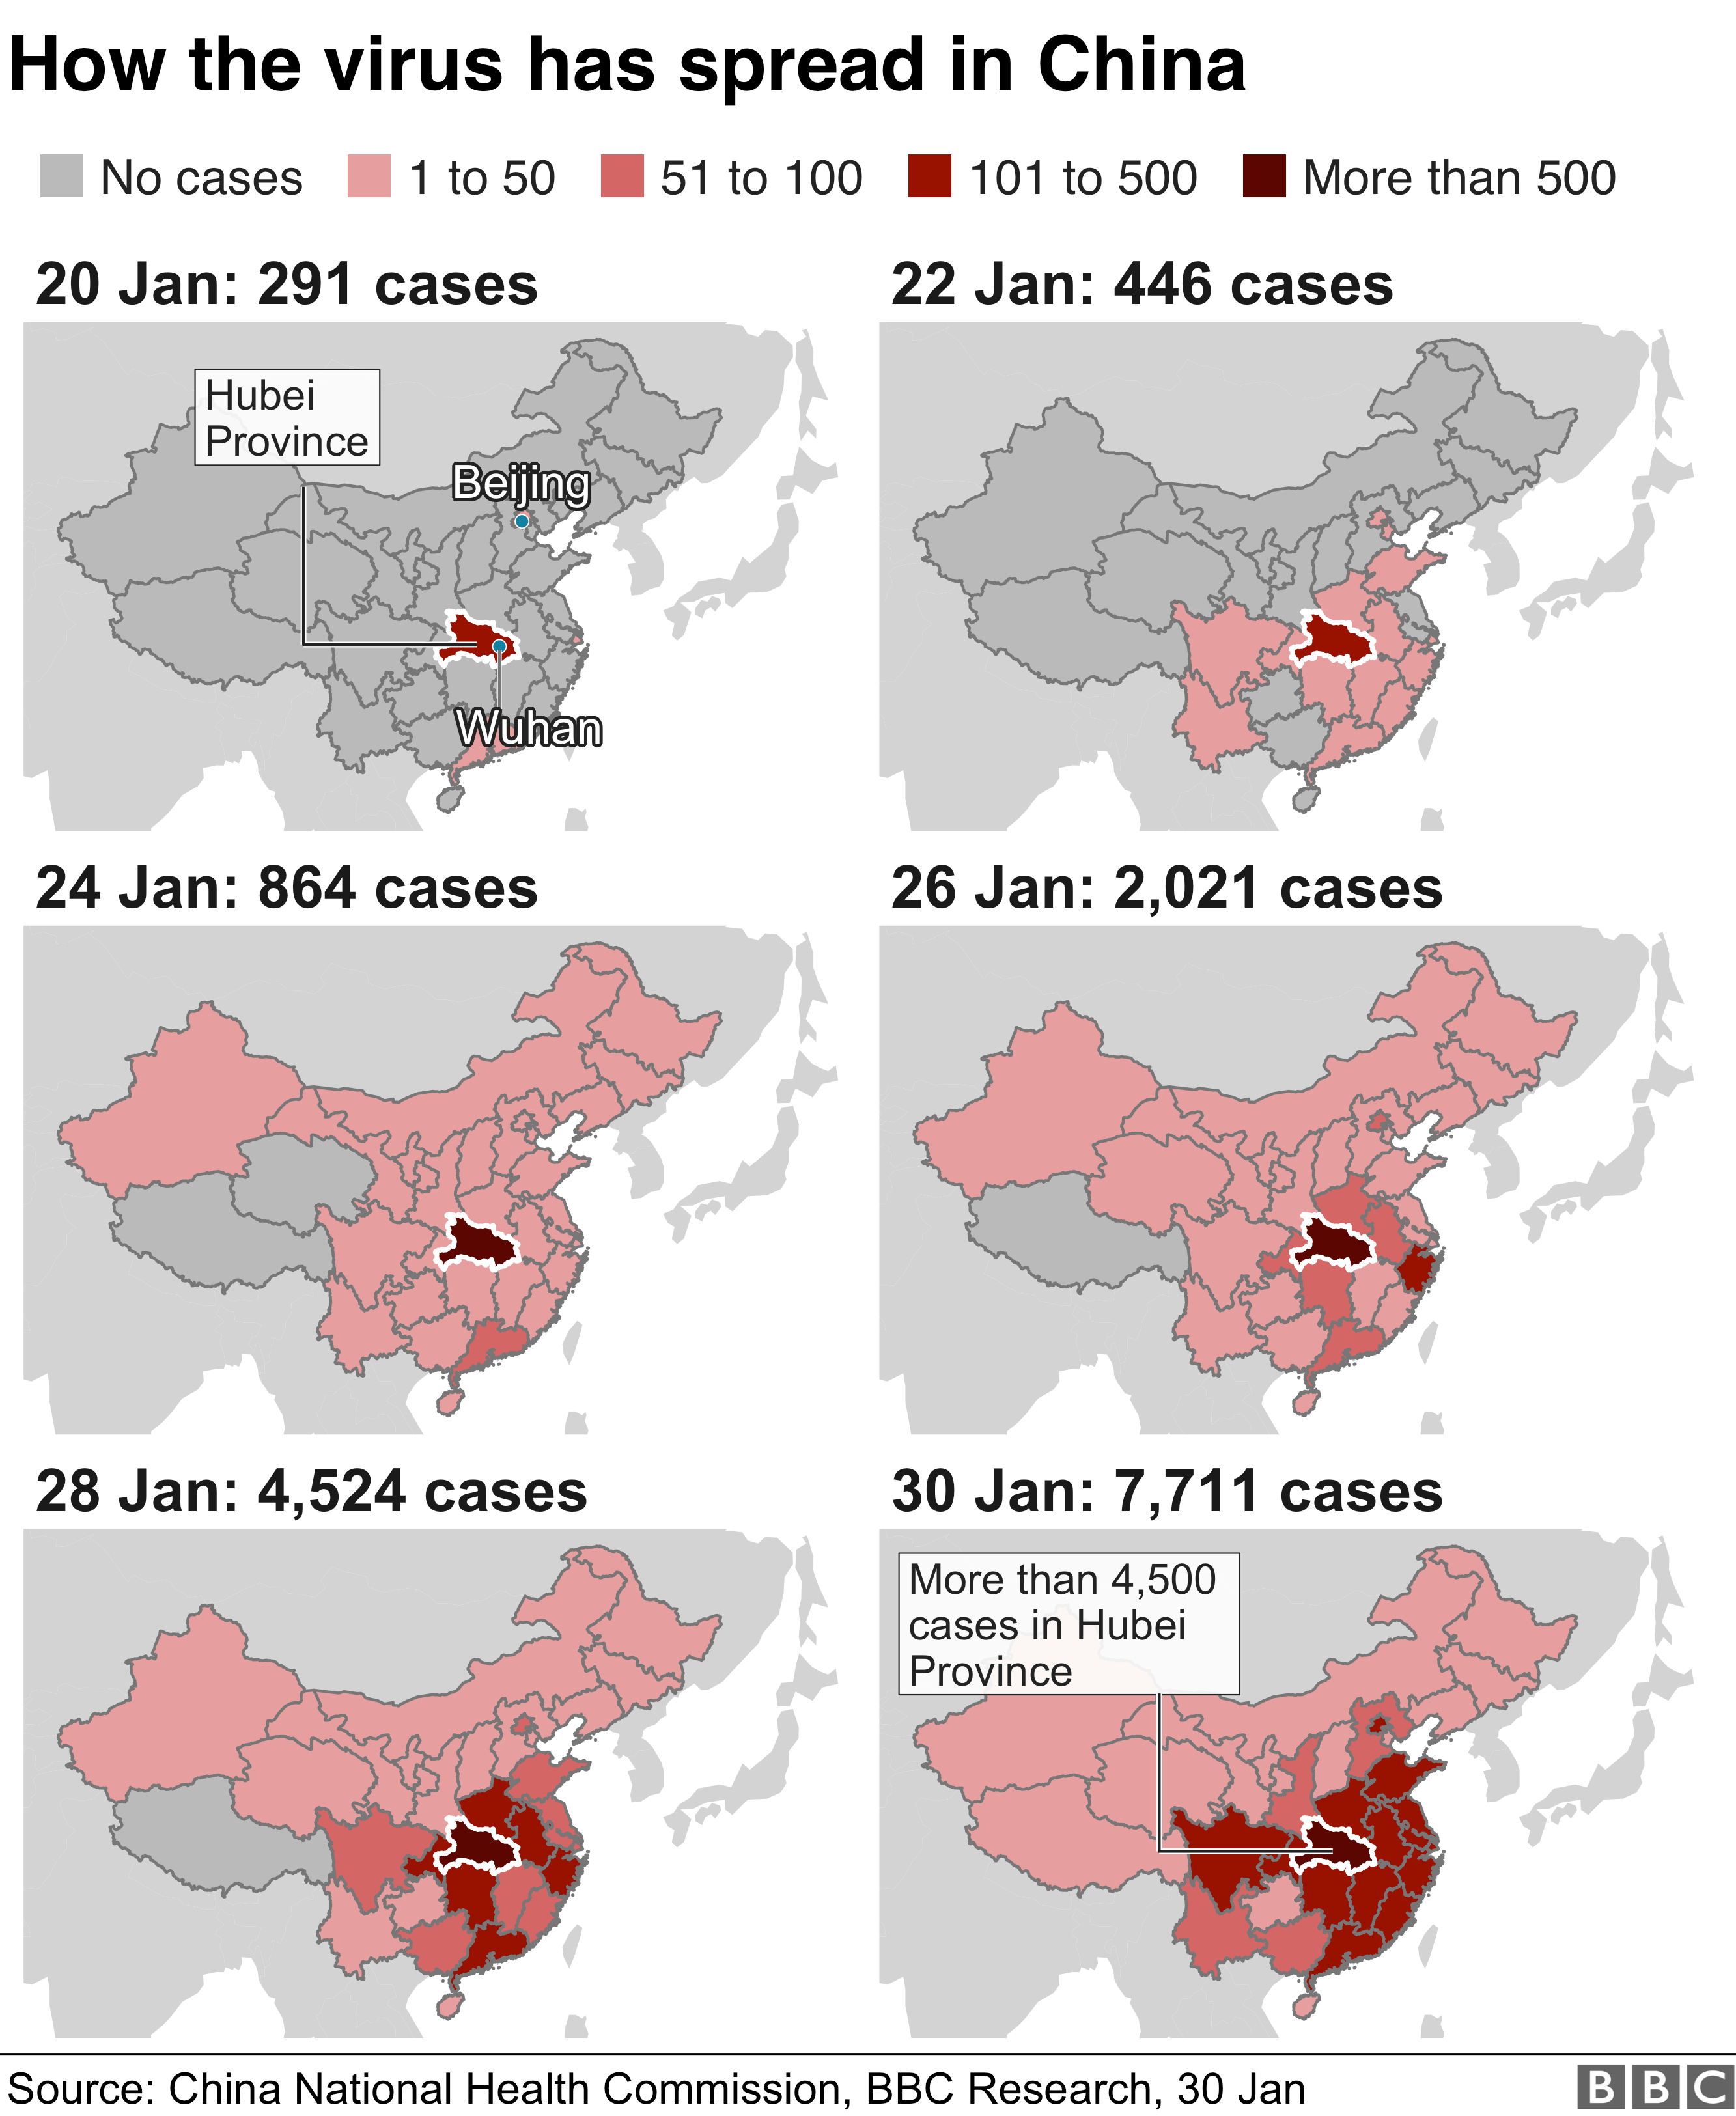 Coronavirus cases have spread to every province in China. There are now 7711 cases compared to 291 on 20 Jan. Hubei province has more than 4500 cases.